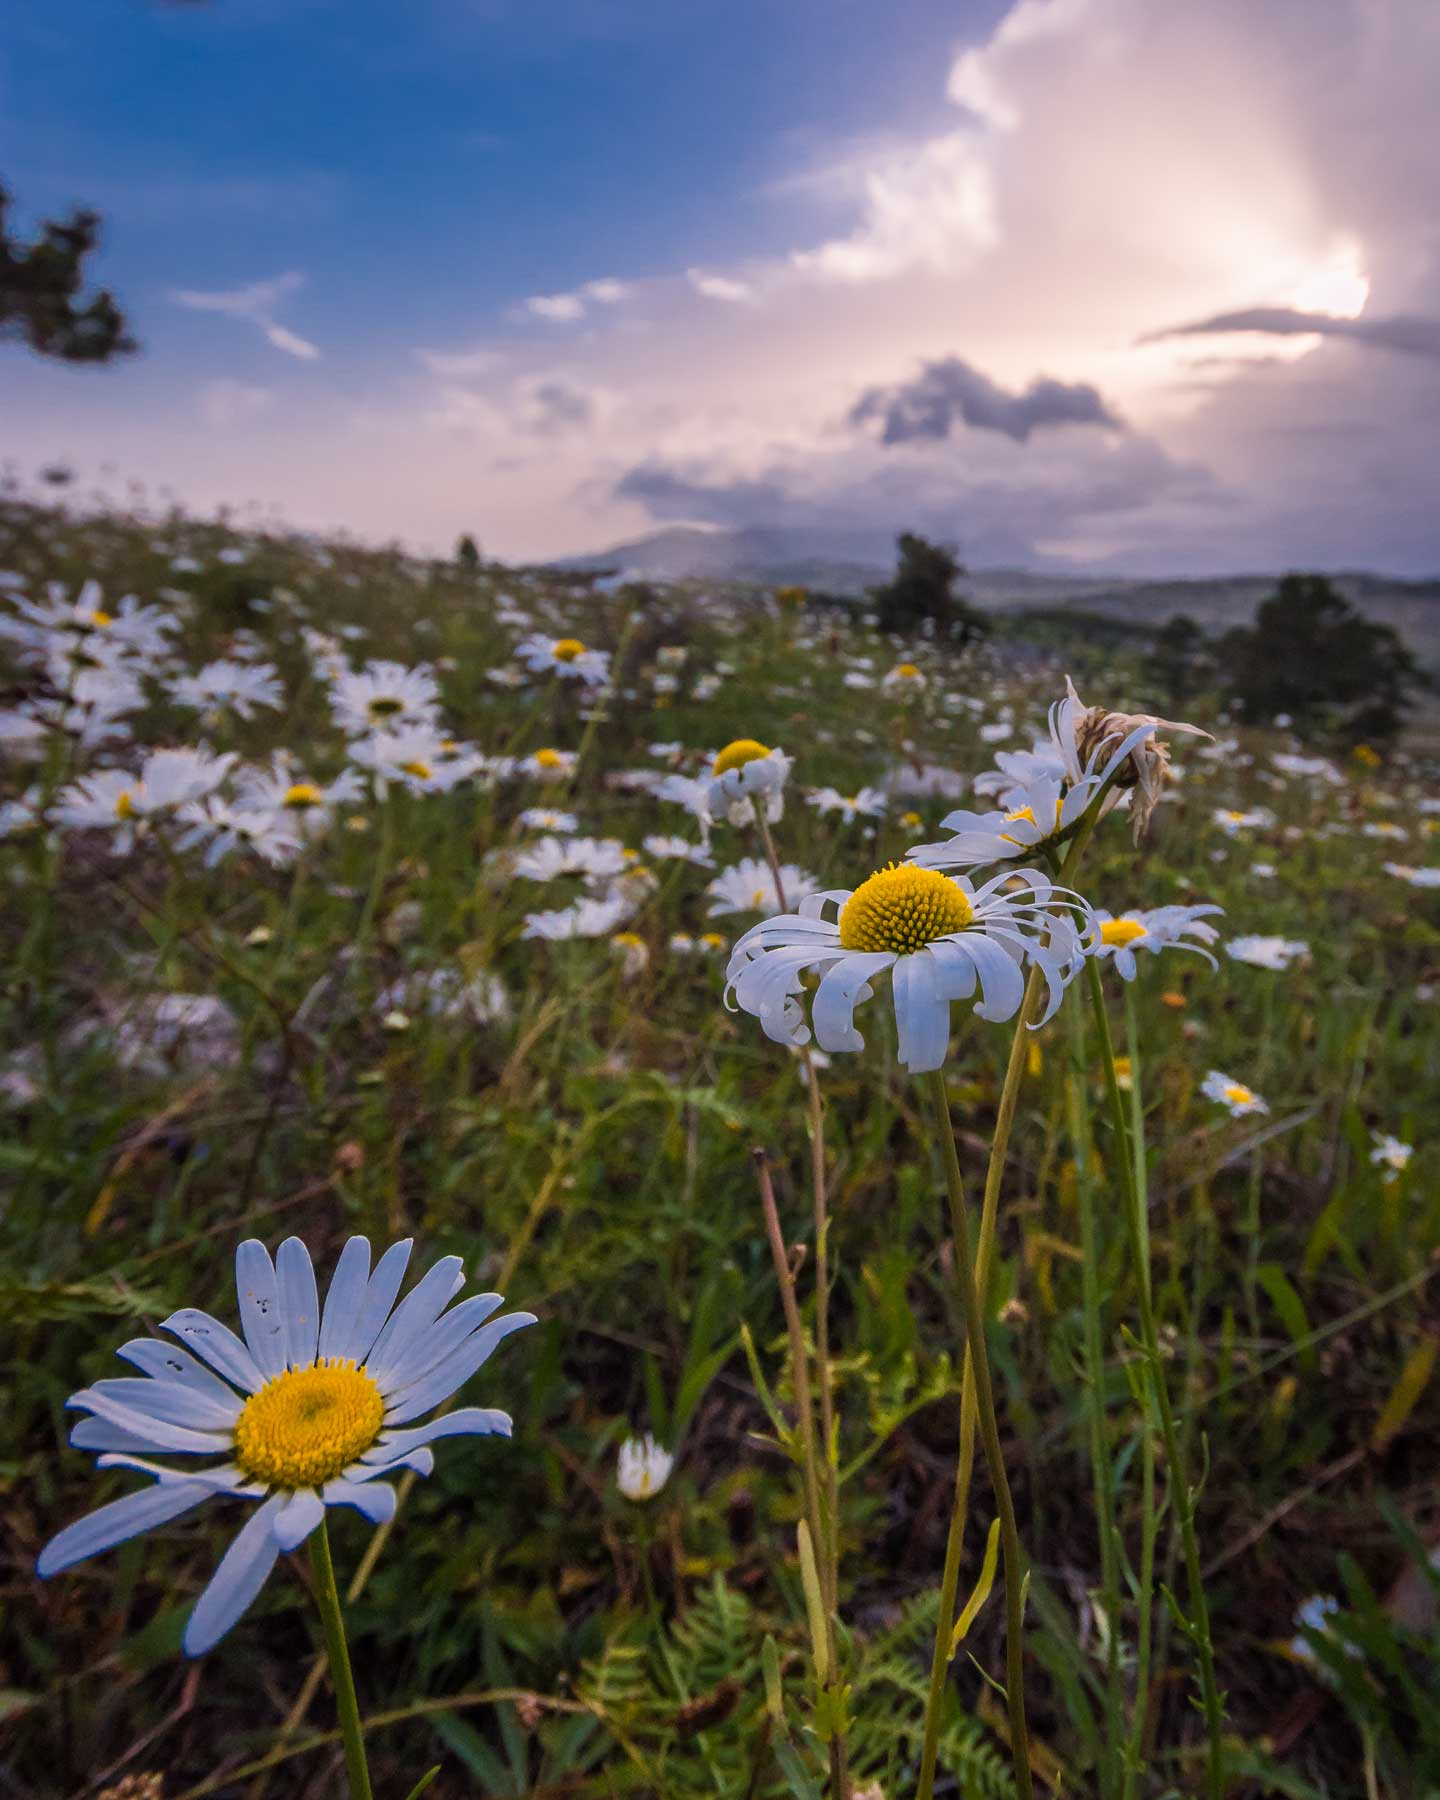 Daisies growing in a field in the Forêt des Pins, Haiti